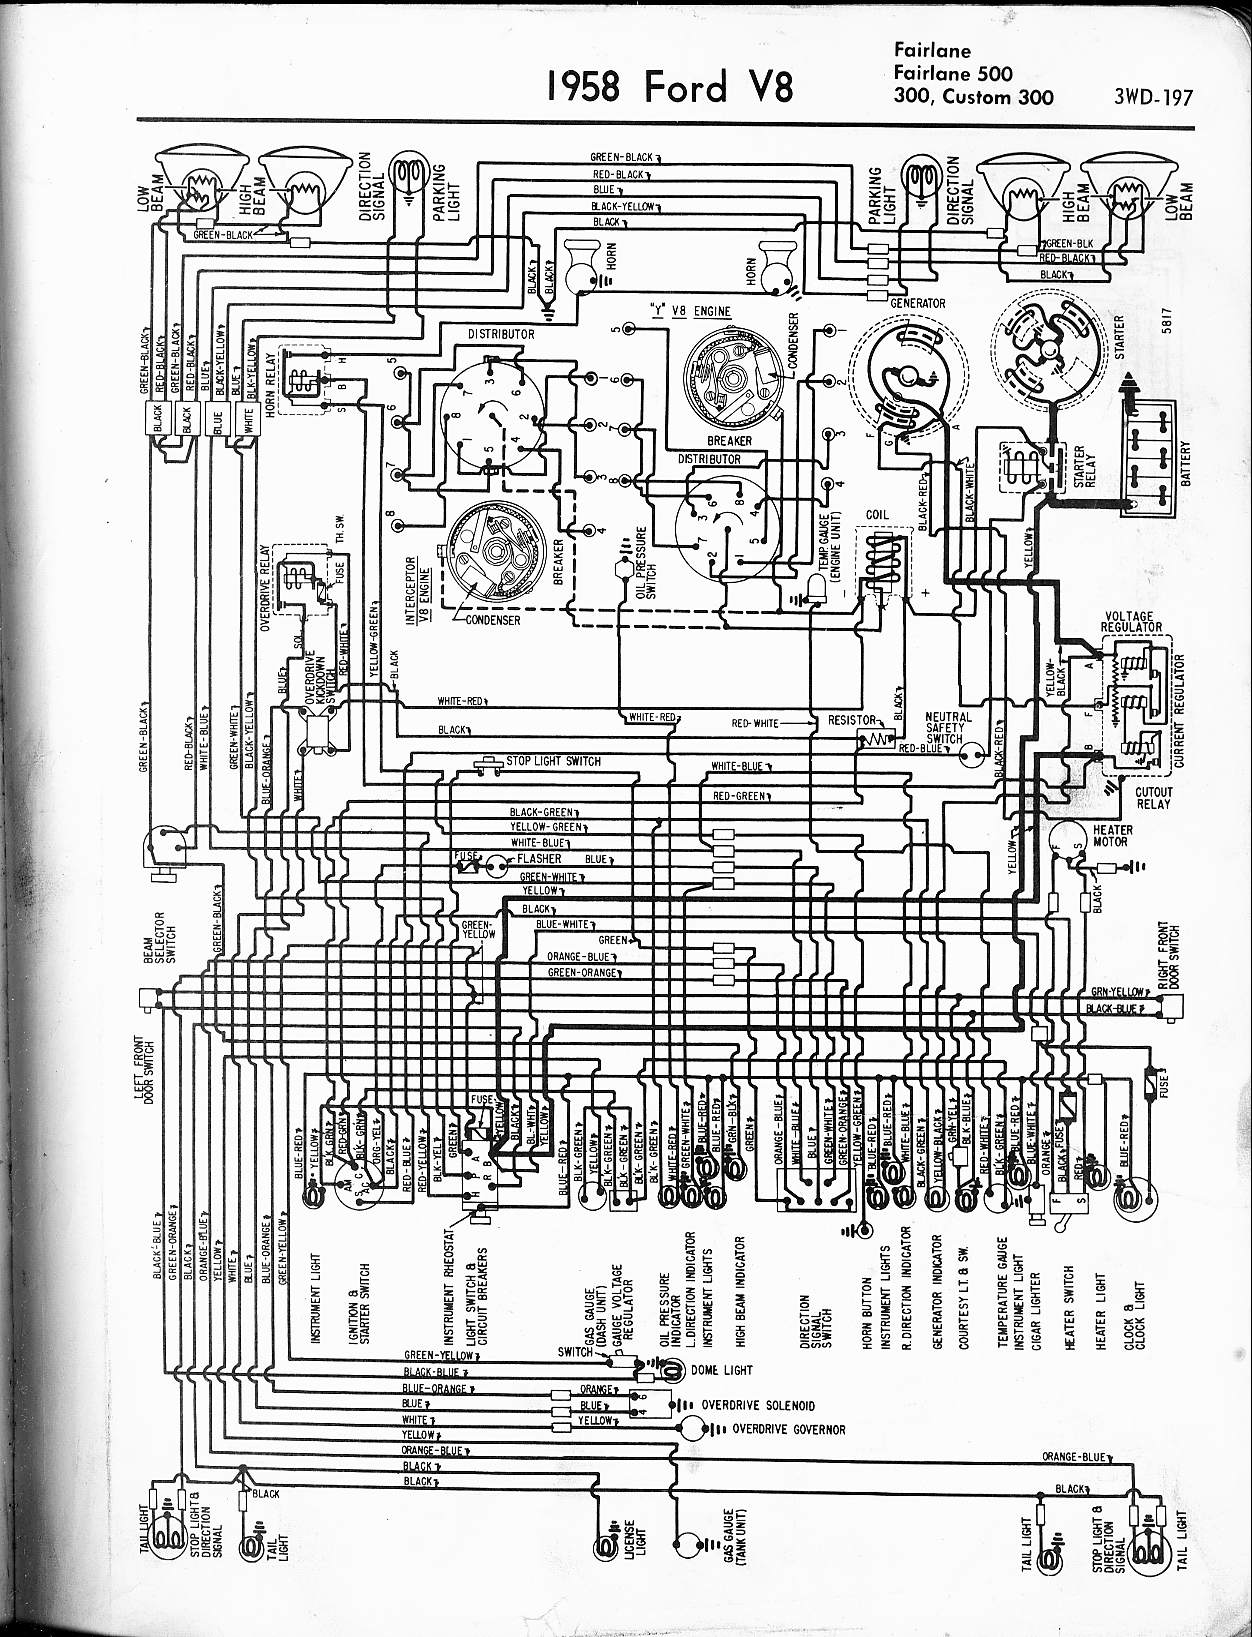 Ford Wiring Diagrams Diagram Data F350 Trailer Plug 57 65 7 Pin 1958 V8 Fairlane